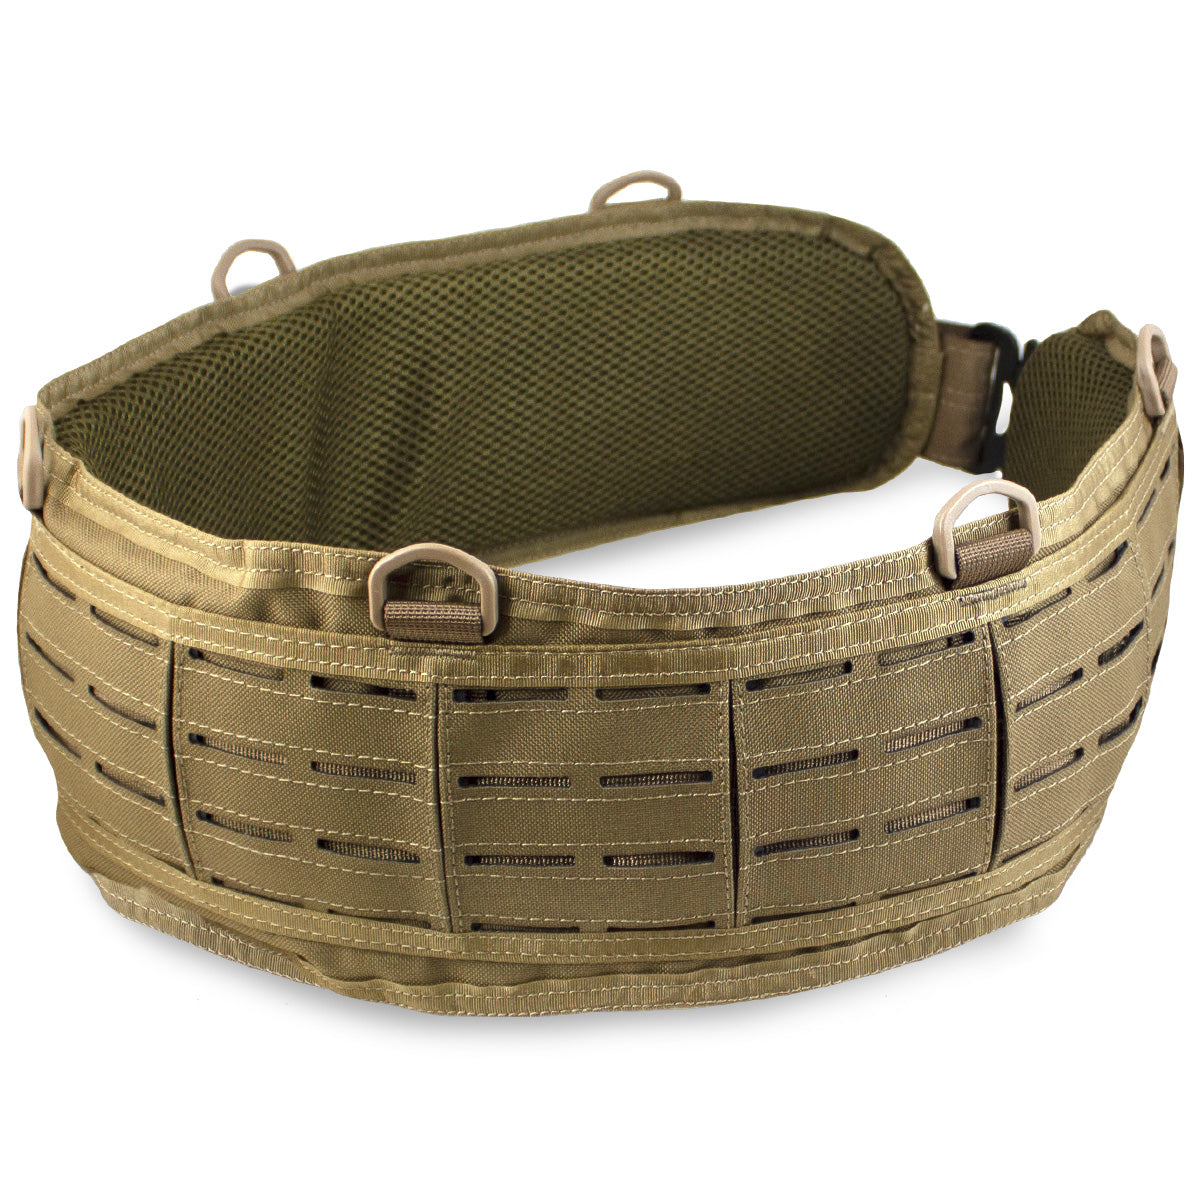 MK3 Padded MOLLE Belt Coyote | Bulldog Tactical Gear